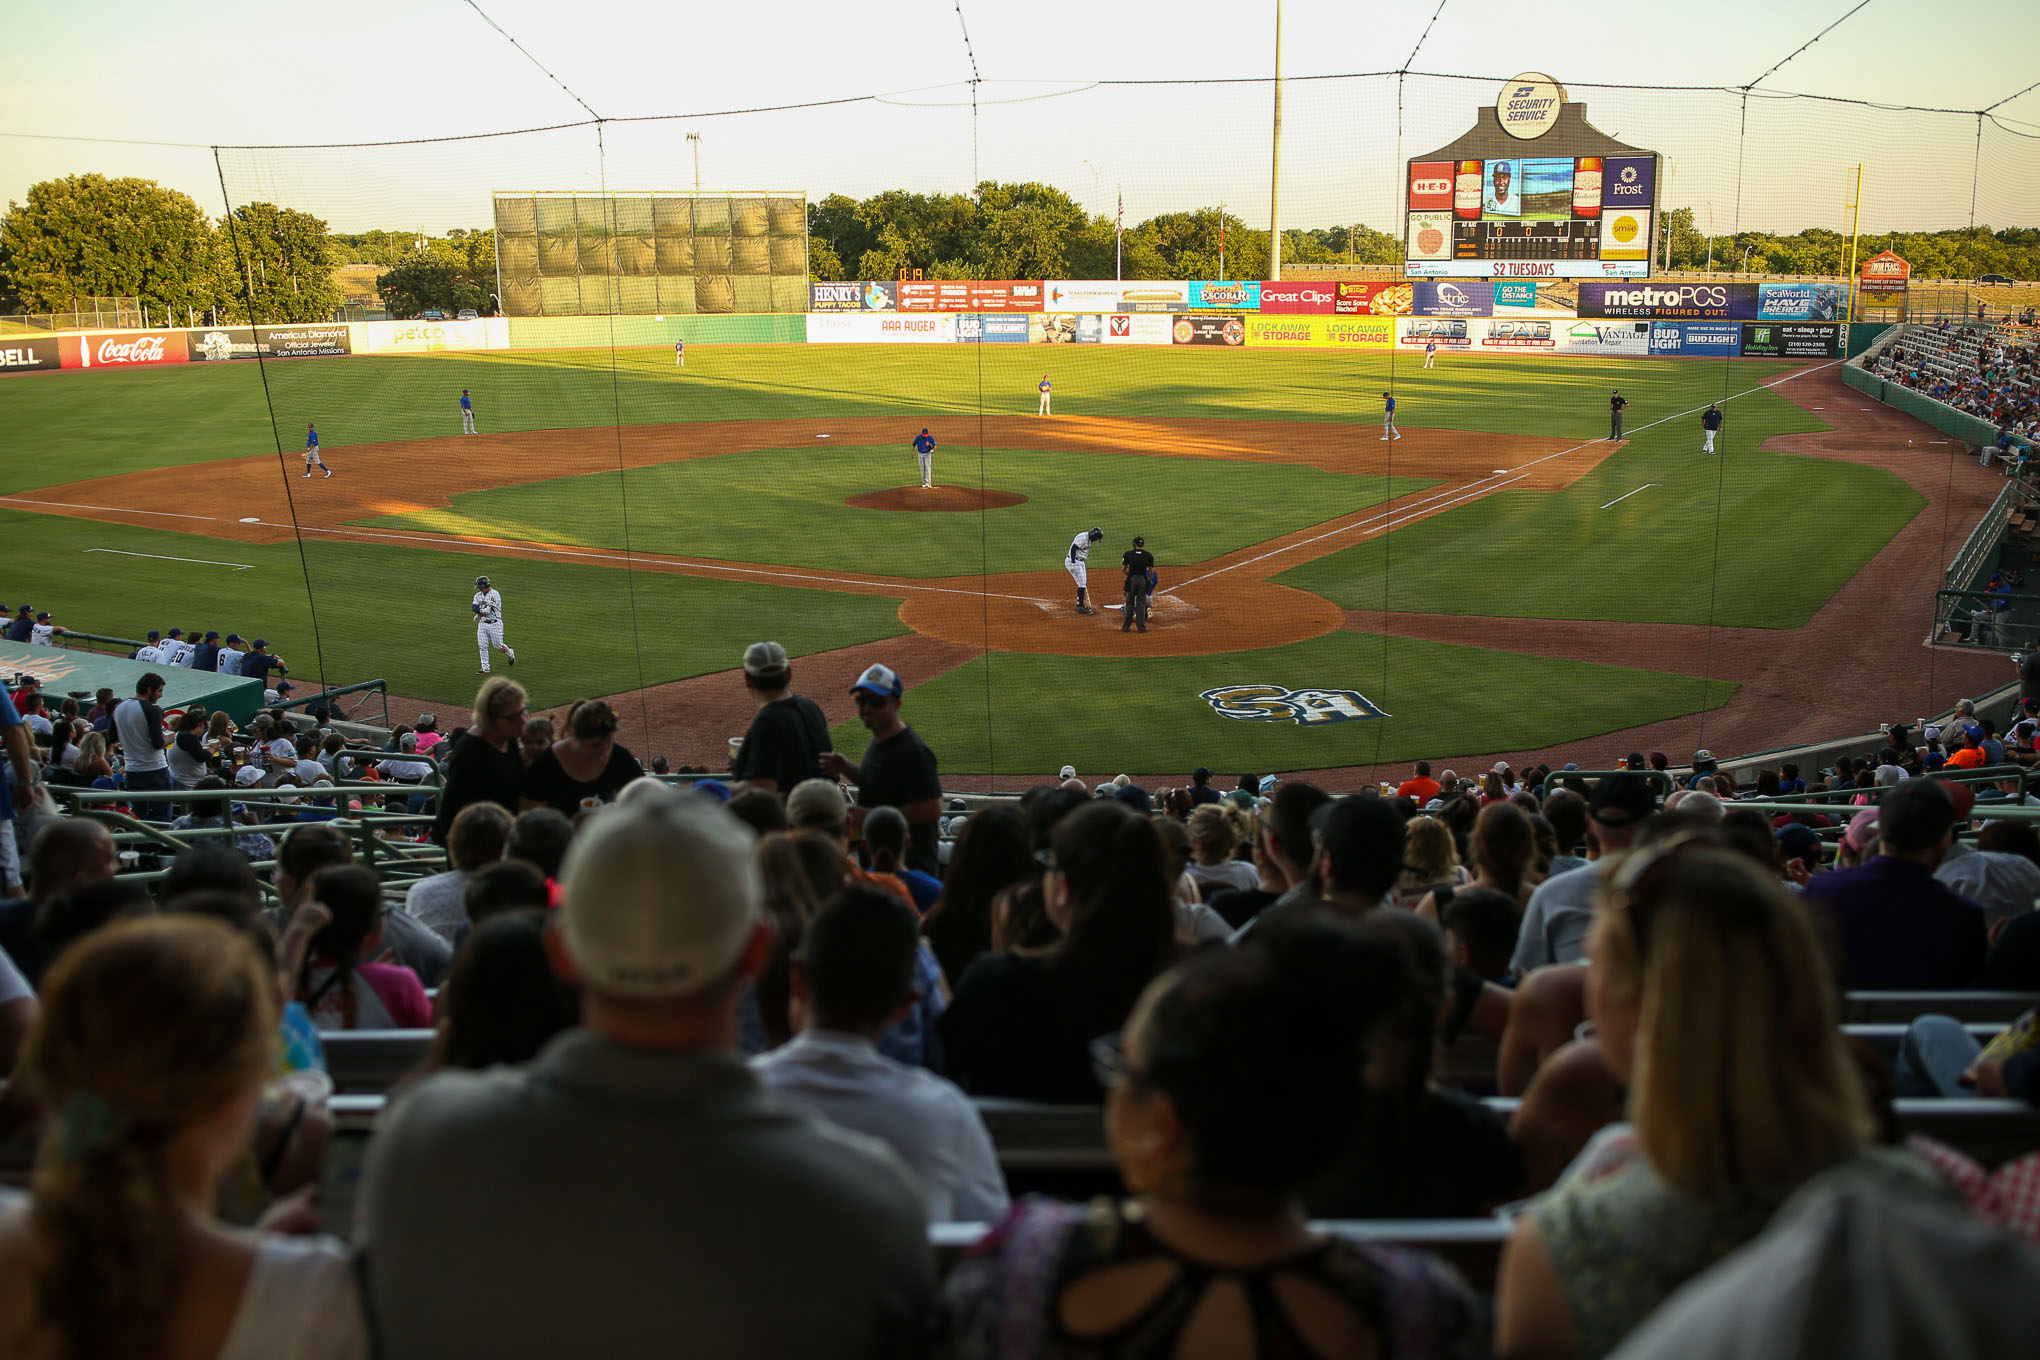 The Missions are currently playing at the Nelson W. Wolff Municipal Stadium around 10 miles West of downtown San Antonio.